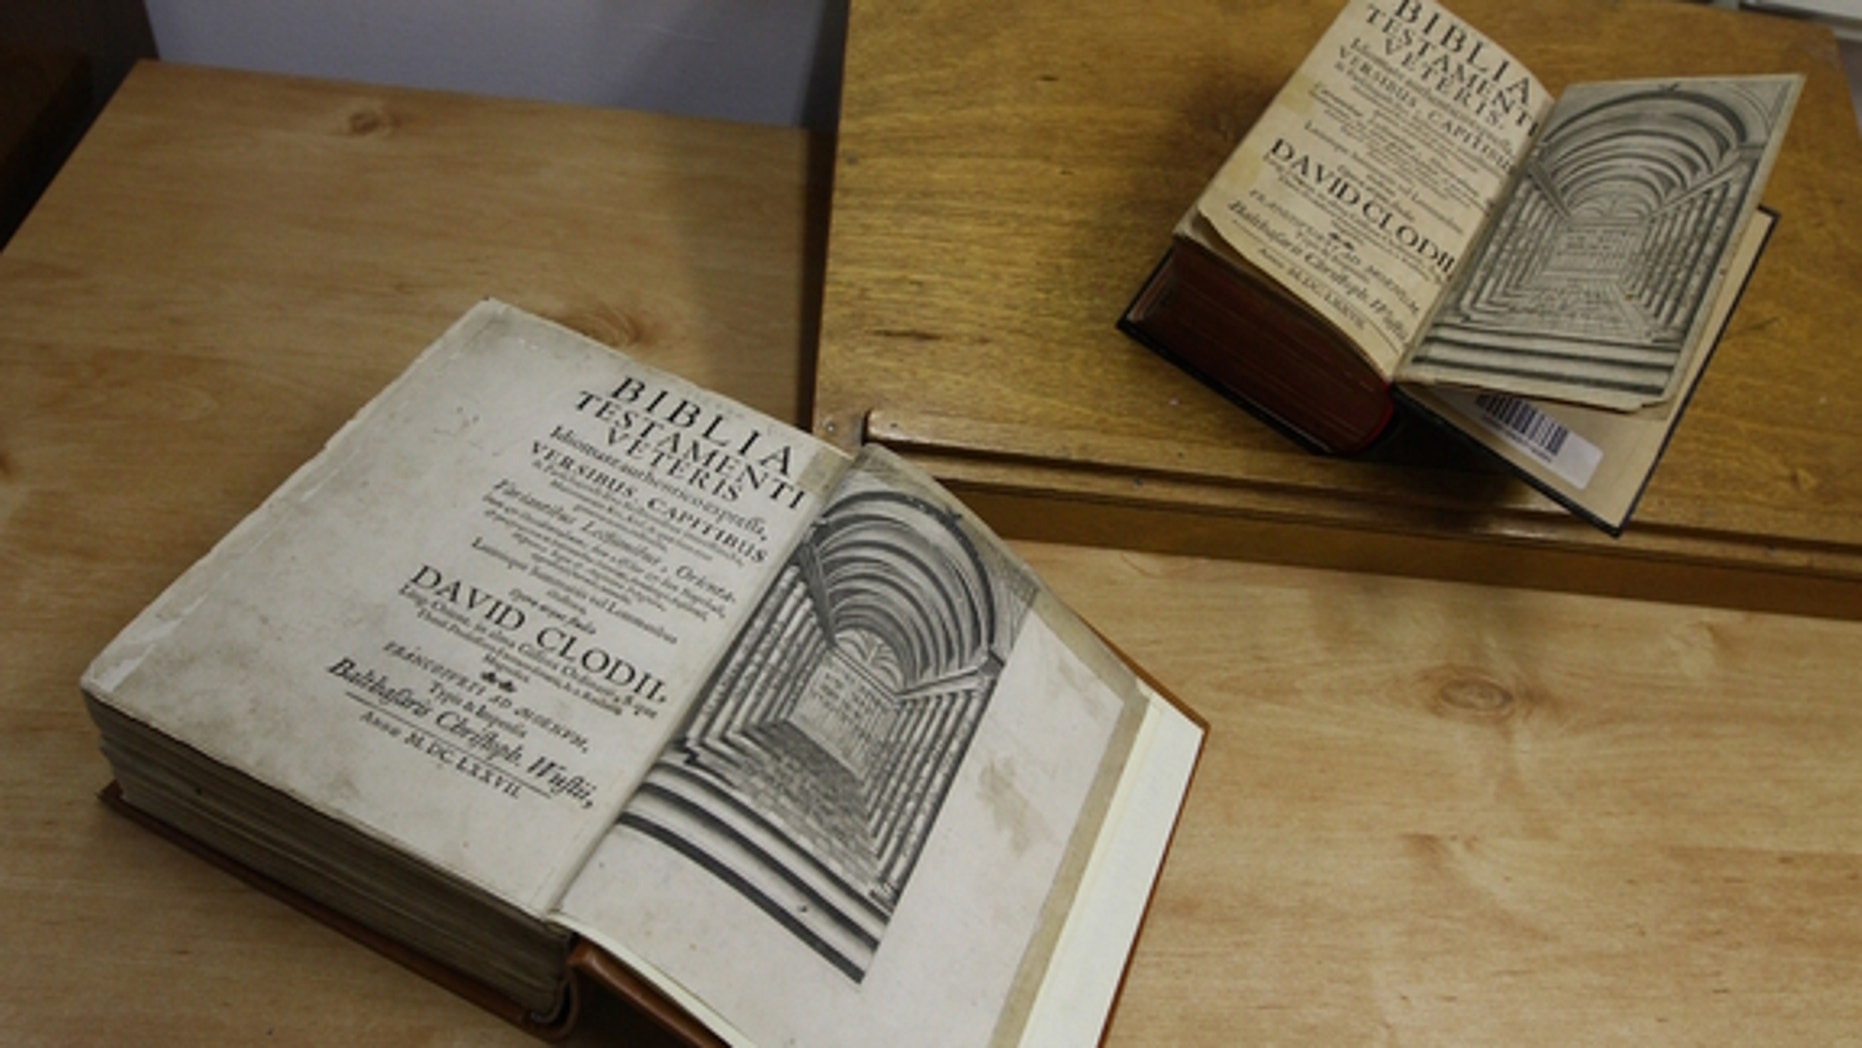 The twin Tanachim (the plural of Tanakh) are shown side by side, with the newfound copy on the bottom. As with all Hebrew books, they open from right to left.